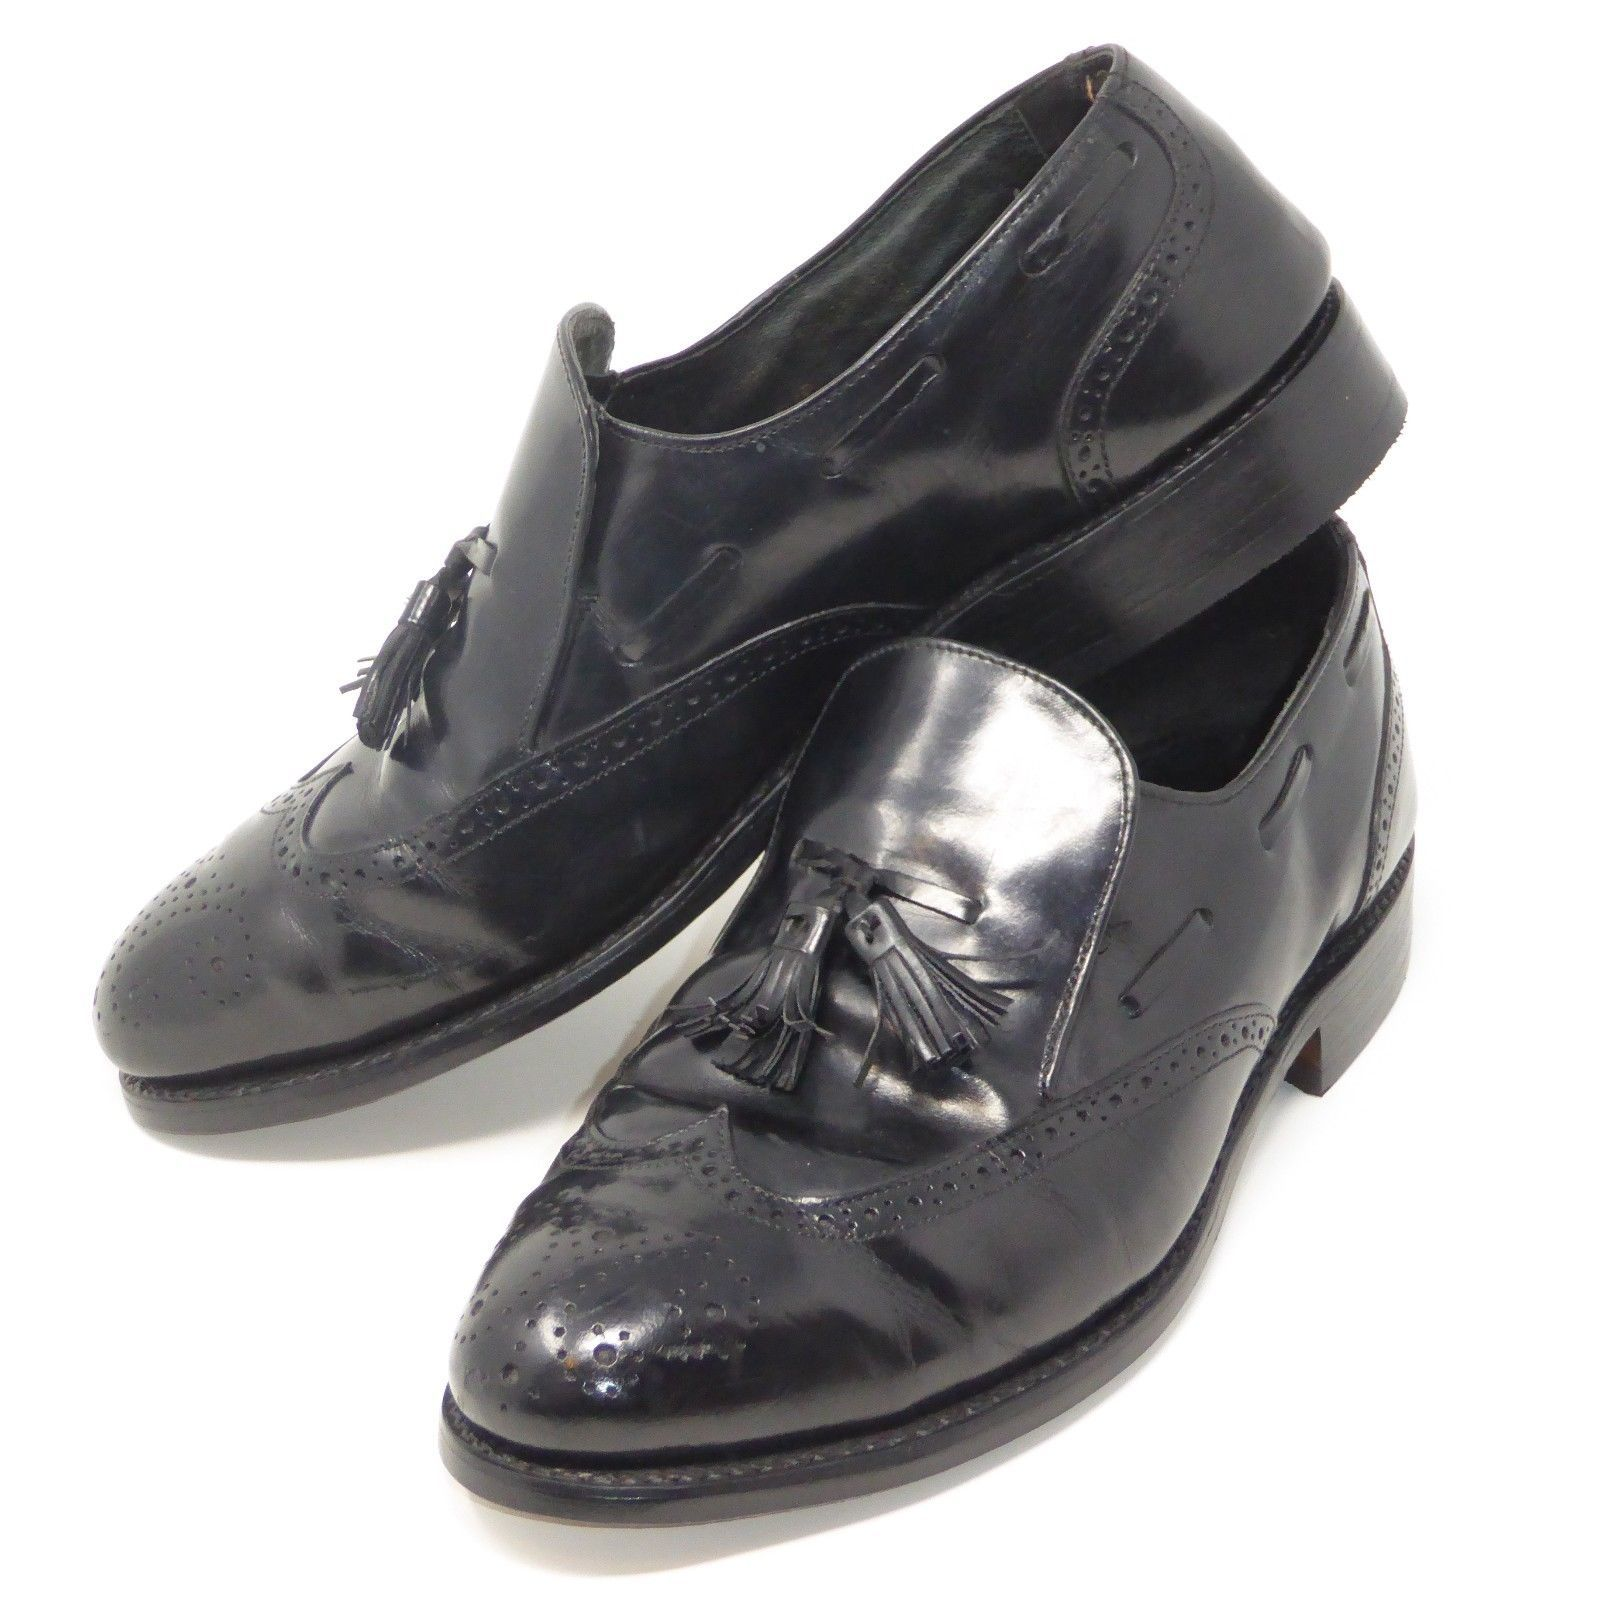 Wingtip Loafers SOLE HEEL REPLACED Oxford SlipOn Shoes 9 D Black Leather Tassel